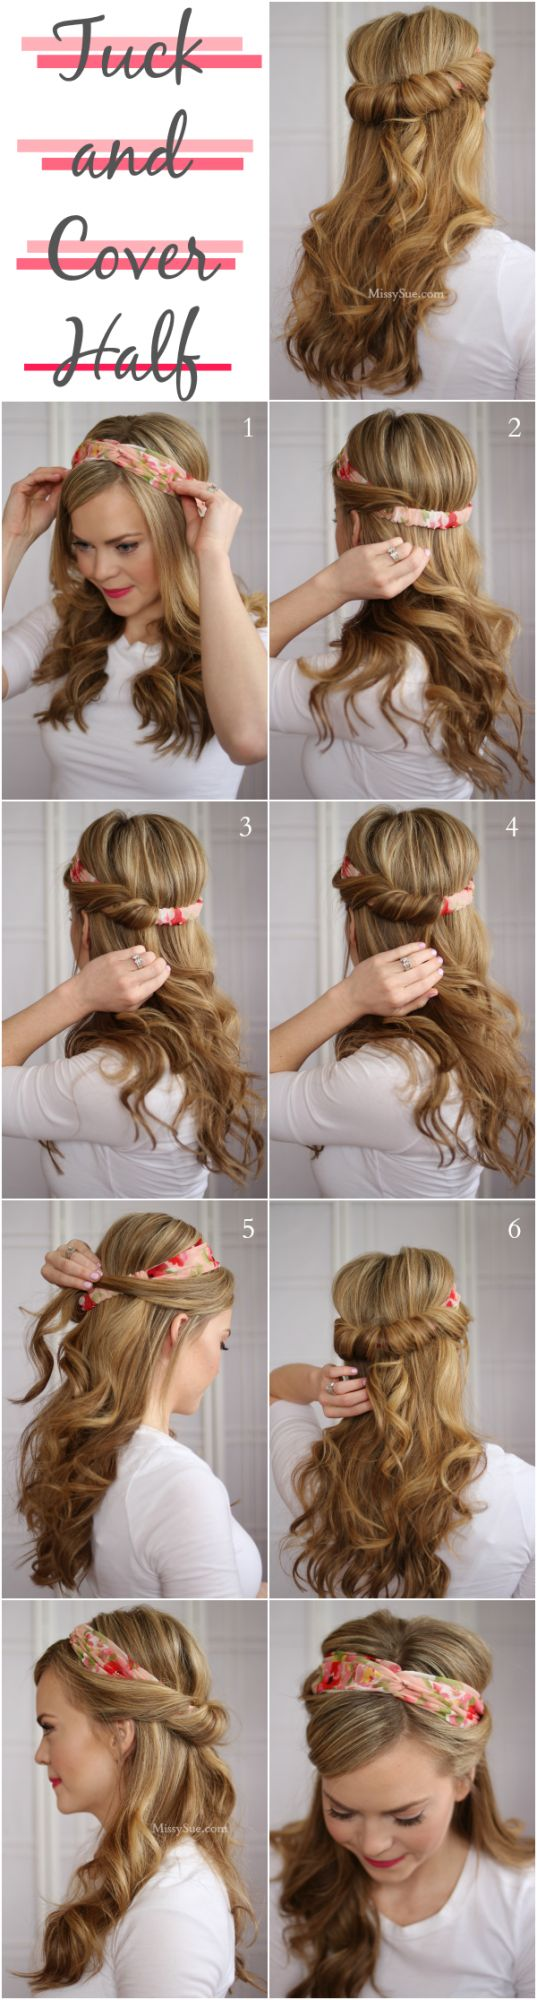 For most women, they would not have enough time to take care of our hairstyle every day. So we need some simple and easy but still look fabulous hairstyle ideas sometimes. If you always don't know how to deal with your hair before going out, this post will help you a lot with 18 cute[Read the Rest]